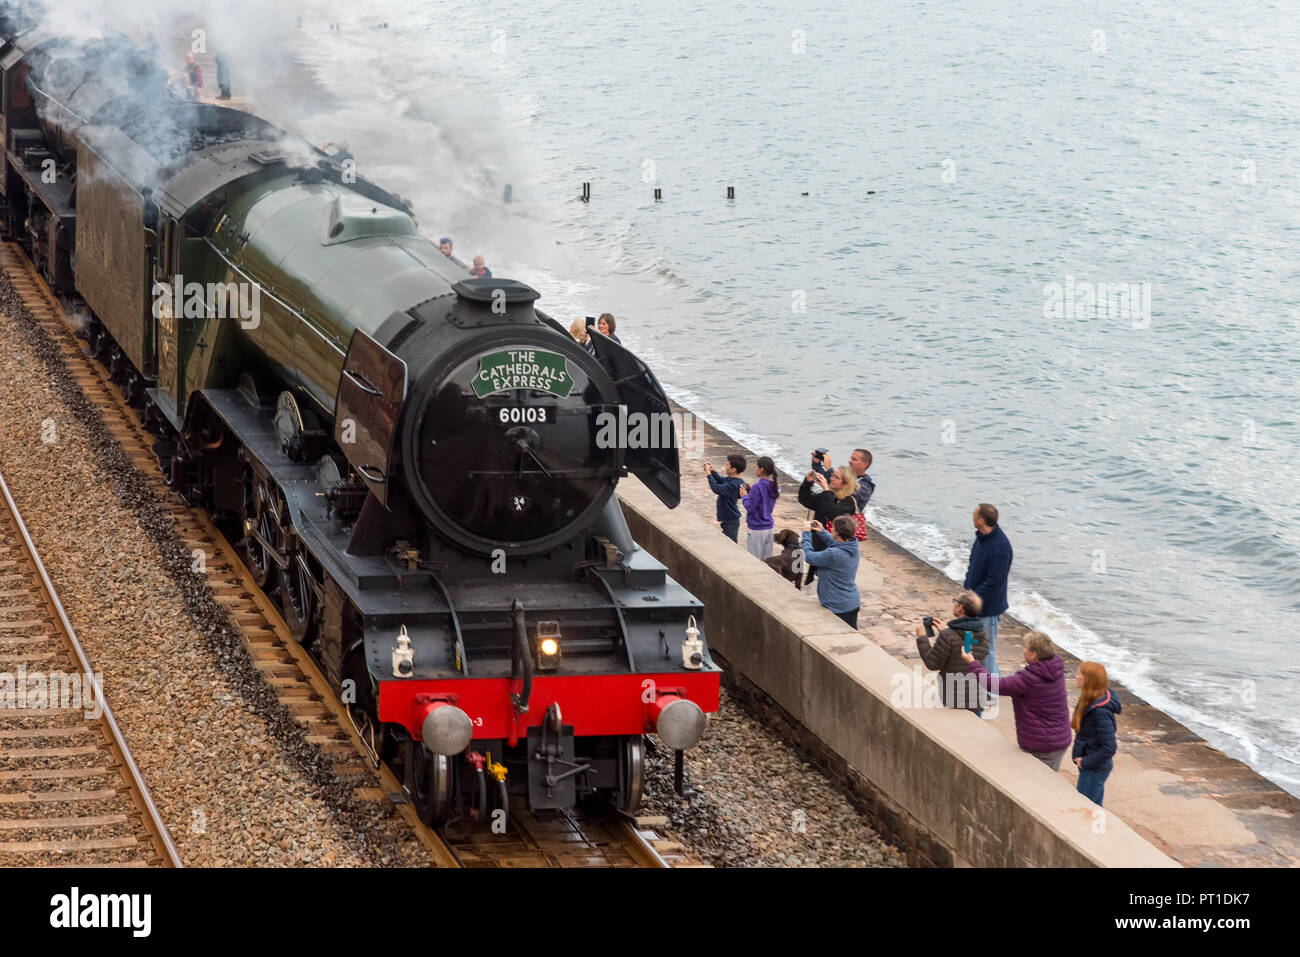 DAWLISH, DEVON, UK - 4OCT2018: The Flying Scotsman on an evening run from Taunton to Plymouth. Seen here passing along the sea wall at Dawlish. - Stock Image